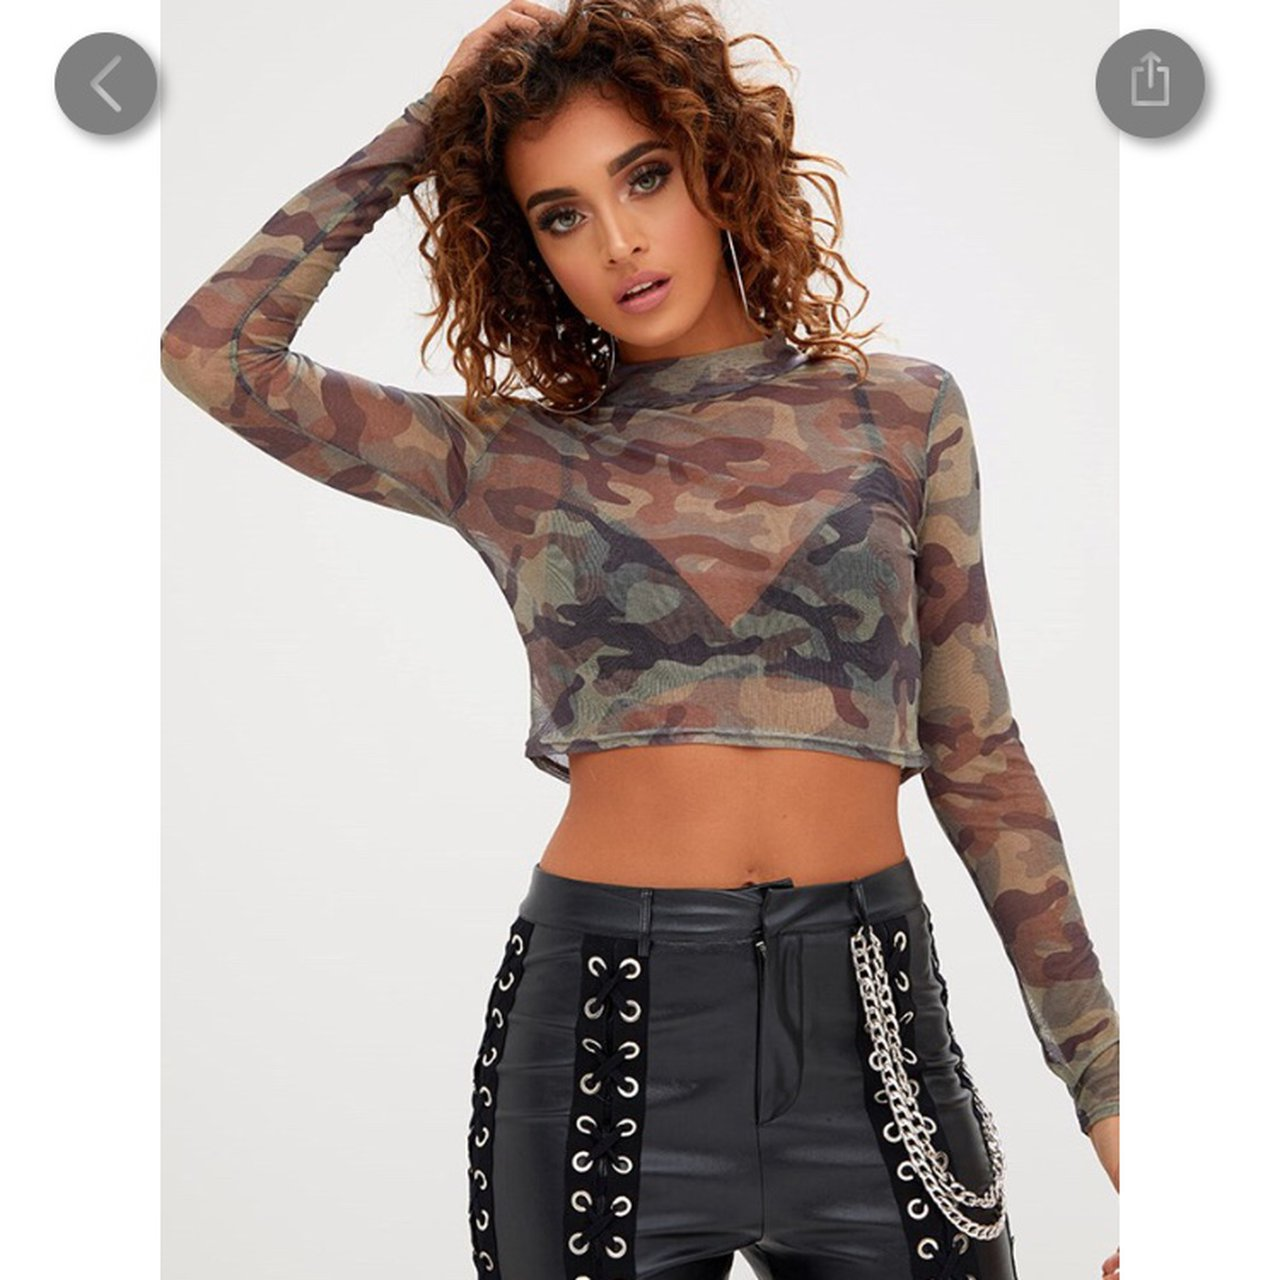 233924762cc6a selling this camo khaki mesh crop top from pretty little 8